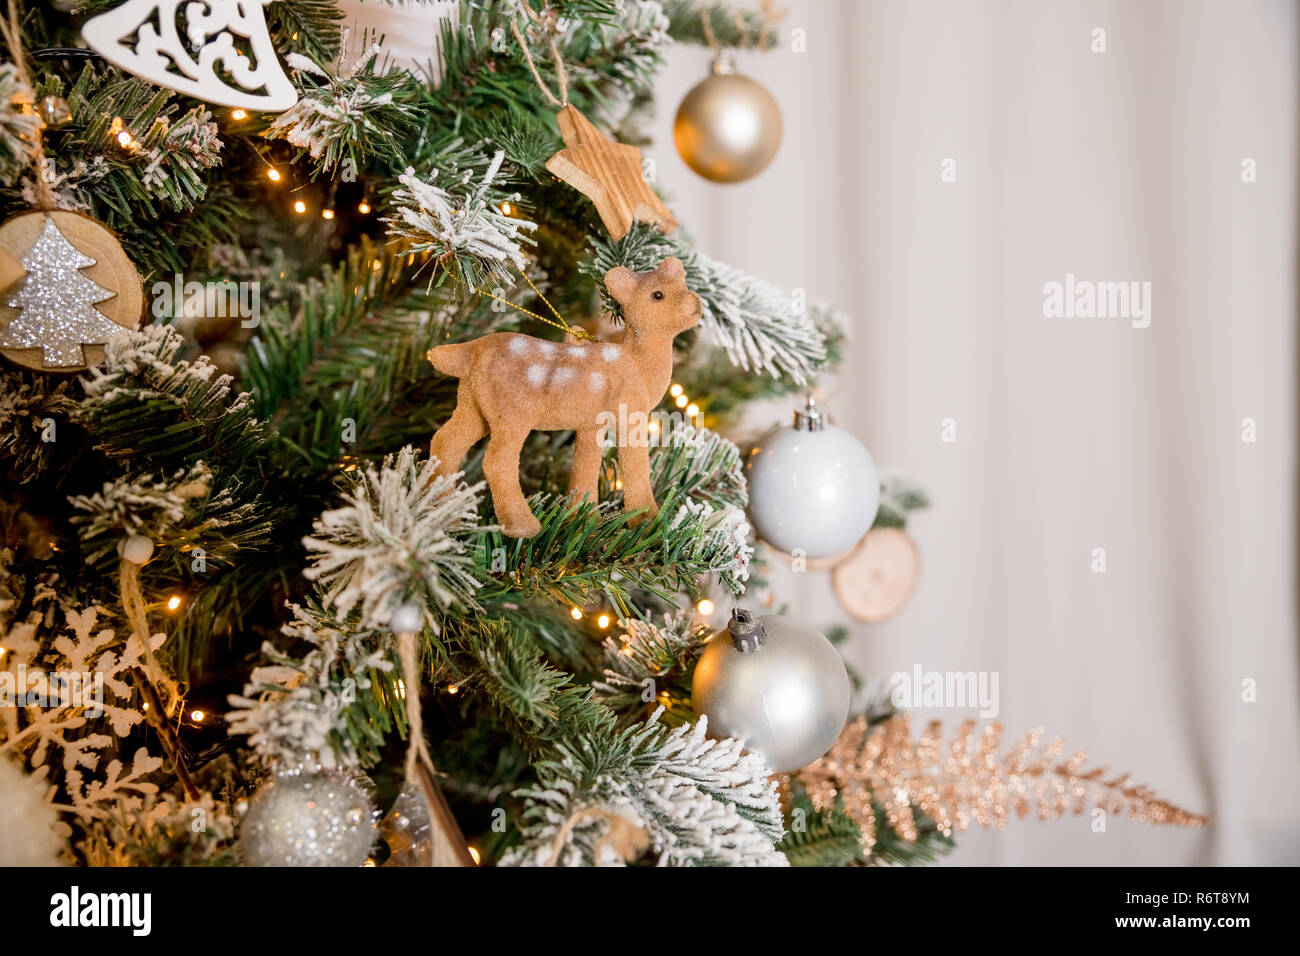 Interior Room Decorated In Christmas Style No People Neutral Pastel Colors Home Comfort Of Modern Cozy